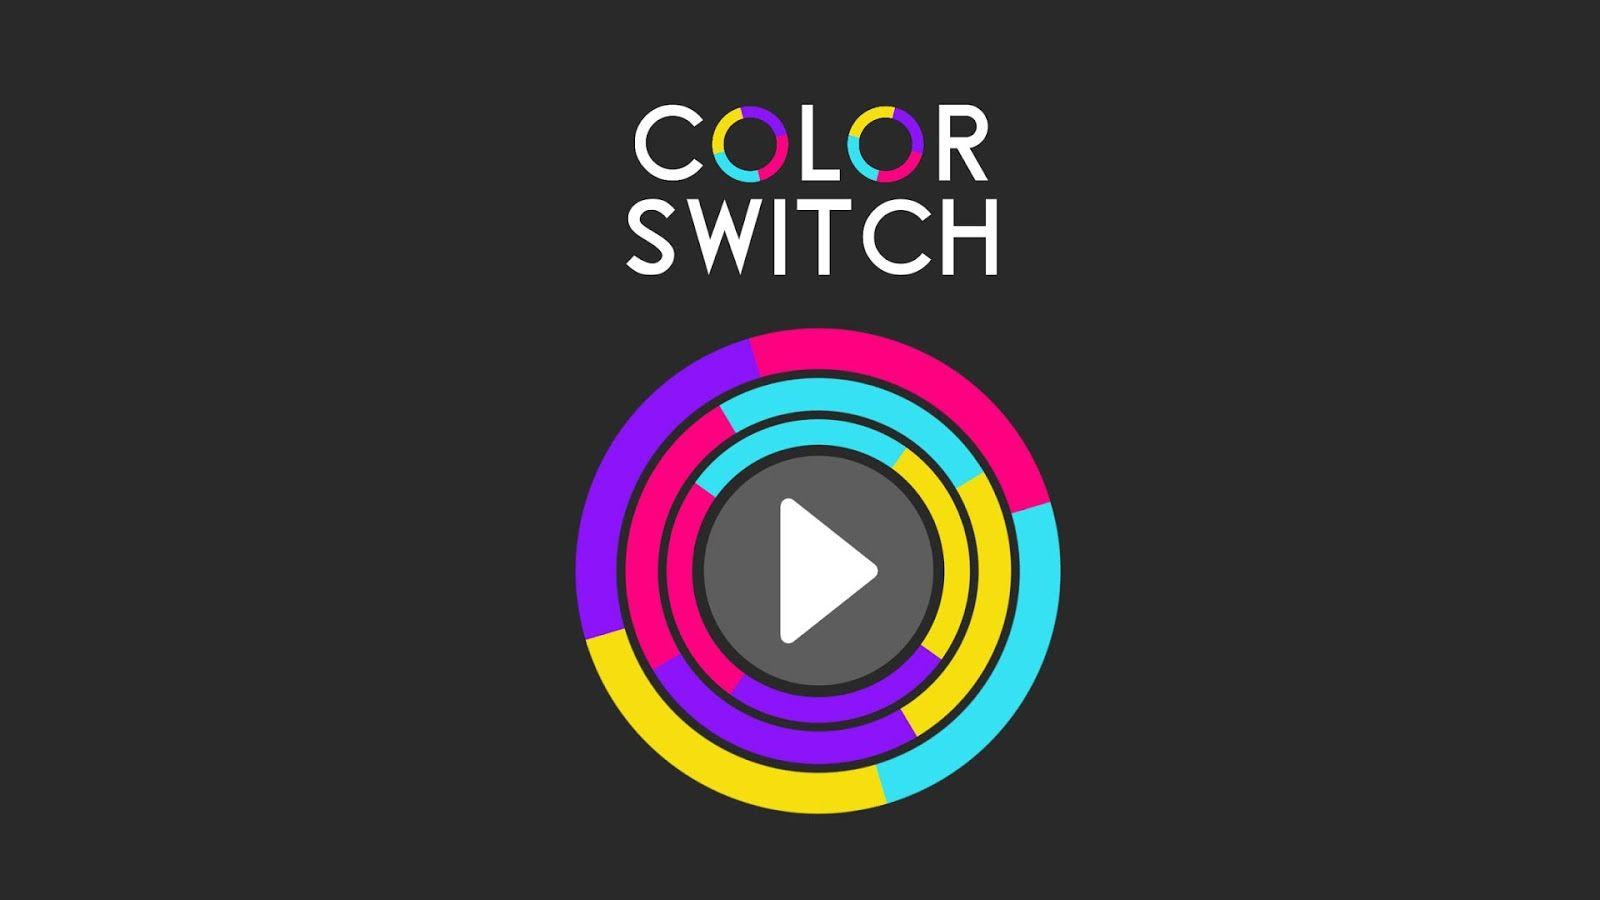 Play Run Color Switch Https Sites Google Com Site Bestunblockedgames77 Color Switch Color Switch Ios Games Mode Games